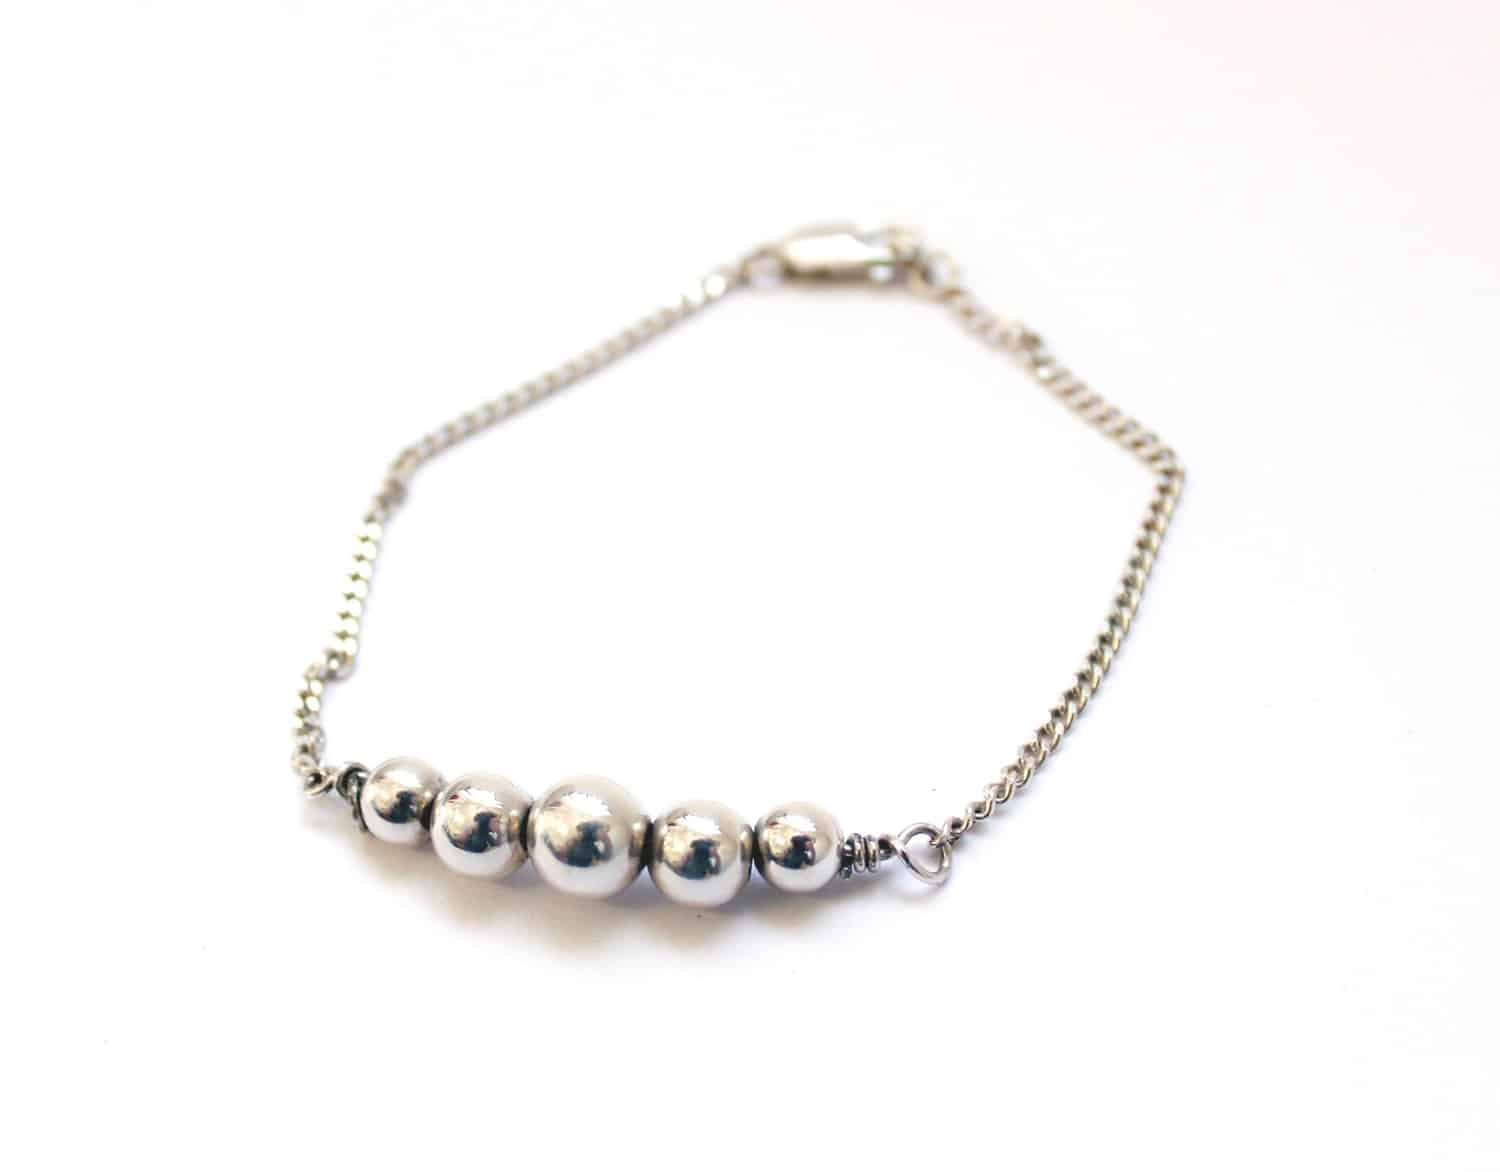 5 Bead Bracelet 18cm By The Silver Goose